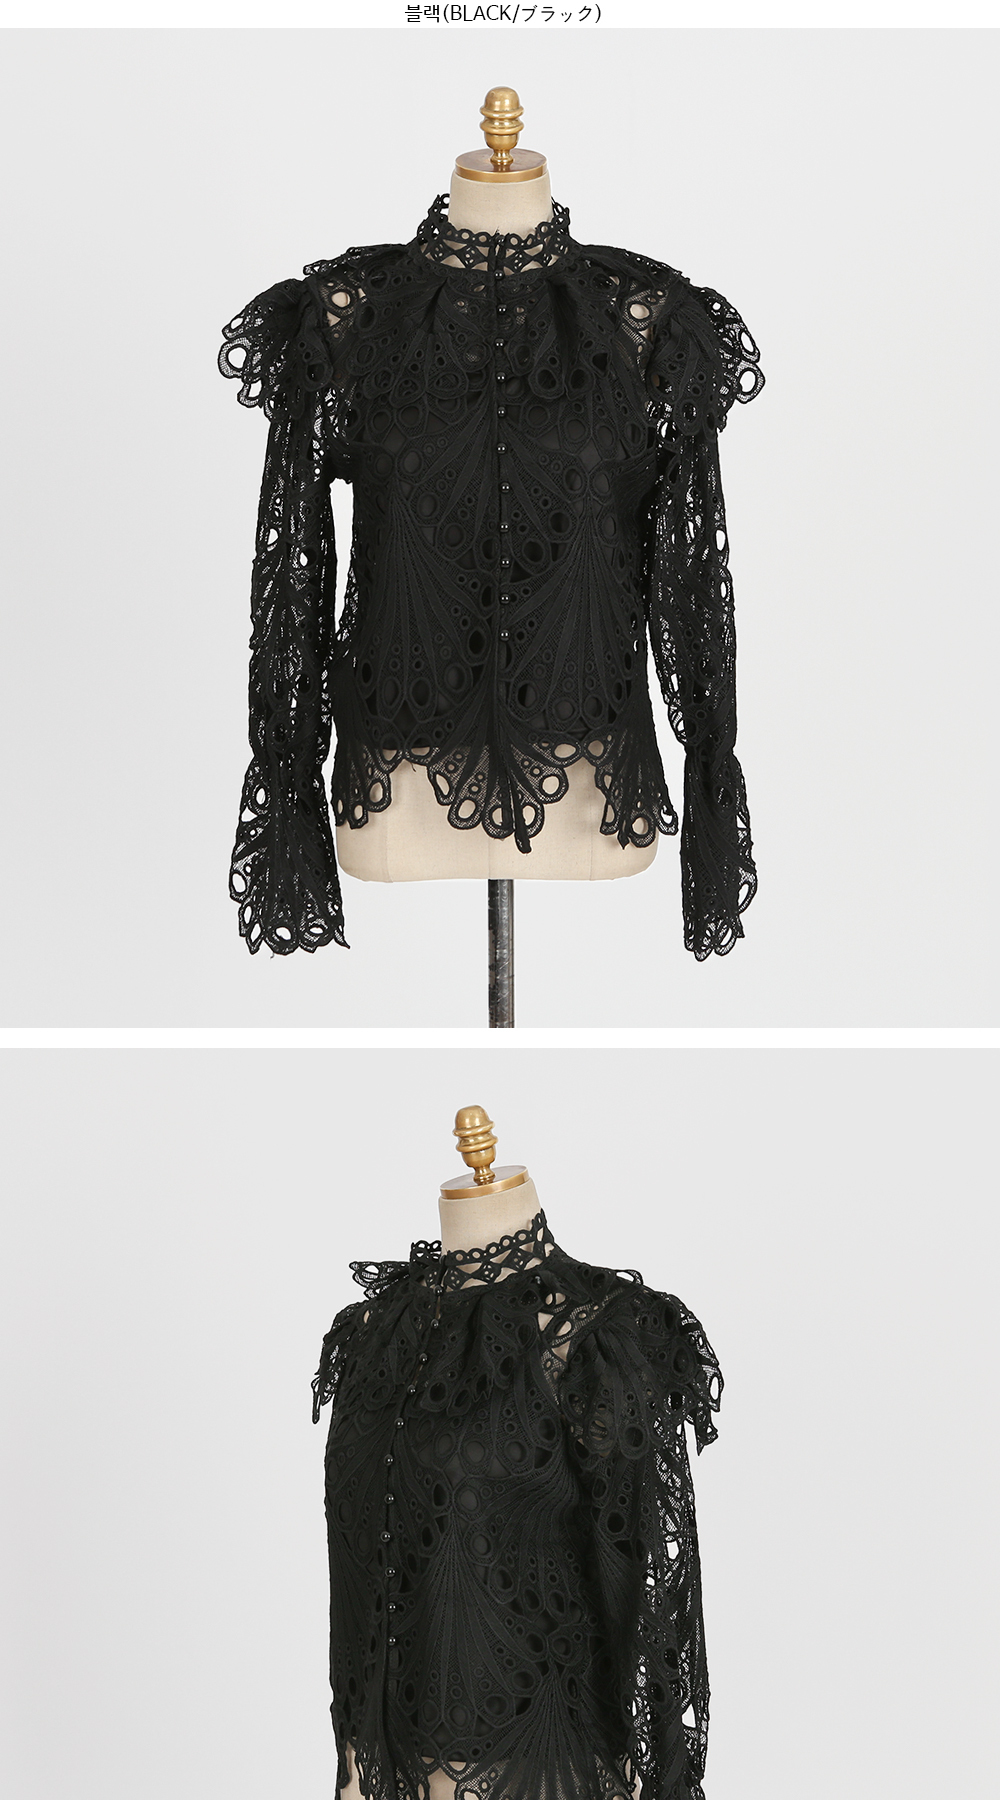 H605e45c136df4c98b9b242de4e42de6aU - Spring / Autumn Stand Collar Flare Long Sleeves Hollow Out Blouse with Tank Top